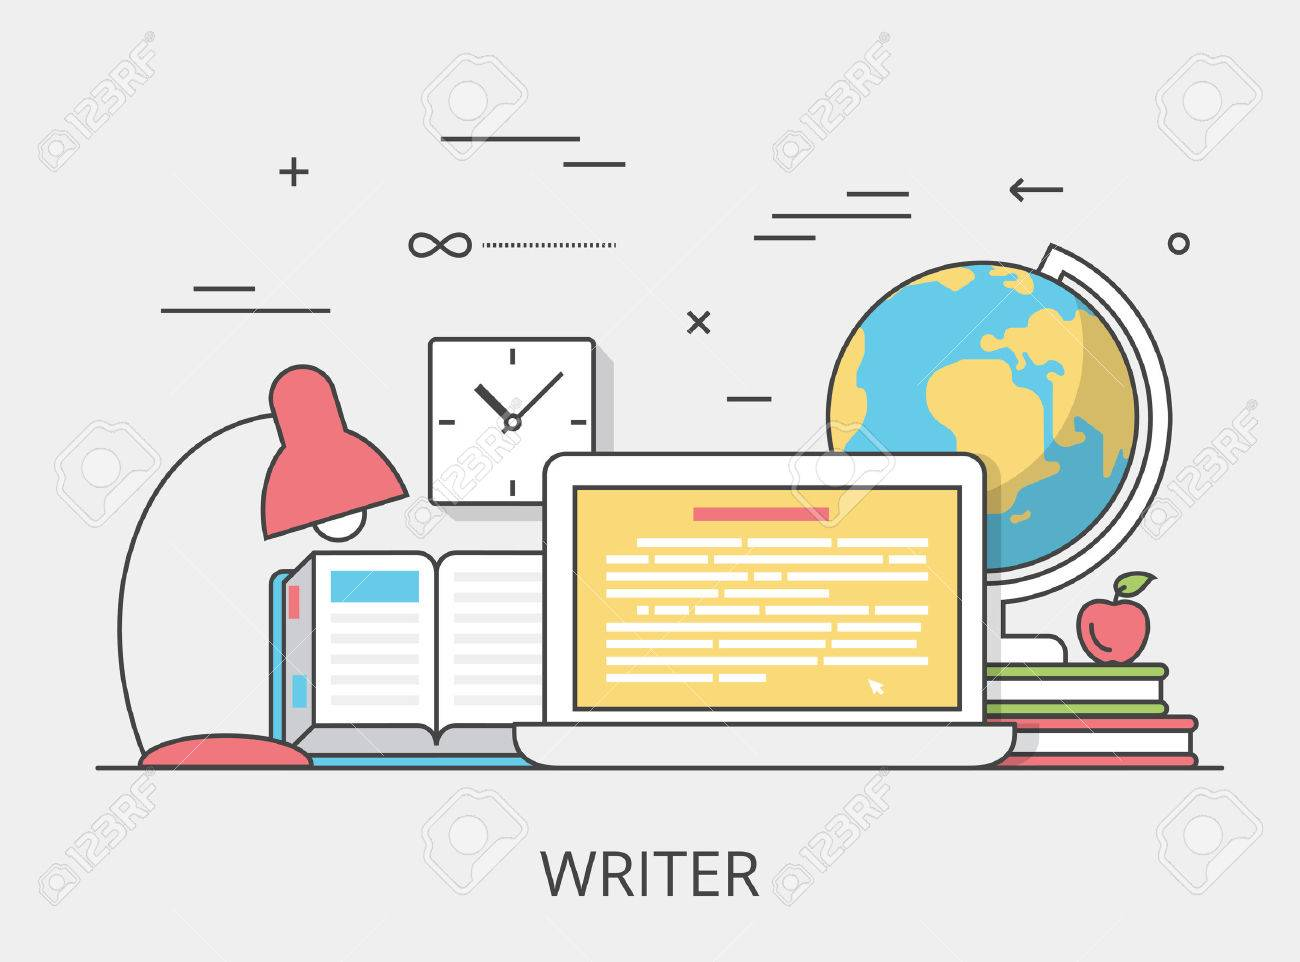 Linear Flat copywriting writer service website hero image vector illustration. Digital services tools and technology concept. Laptop, book, text editor software interface. - 64110471